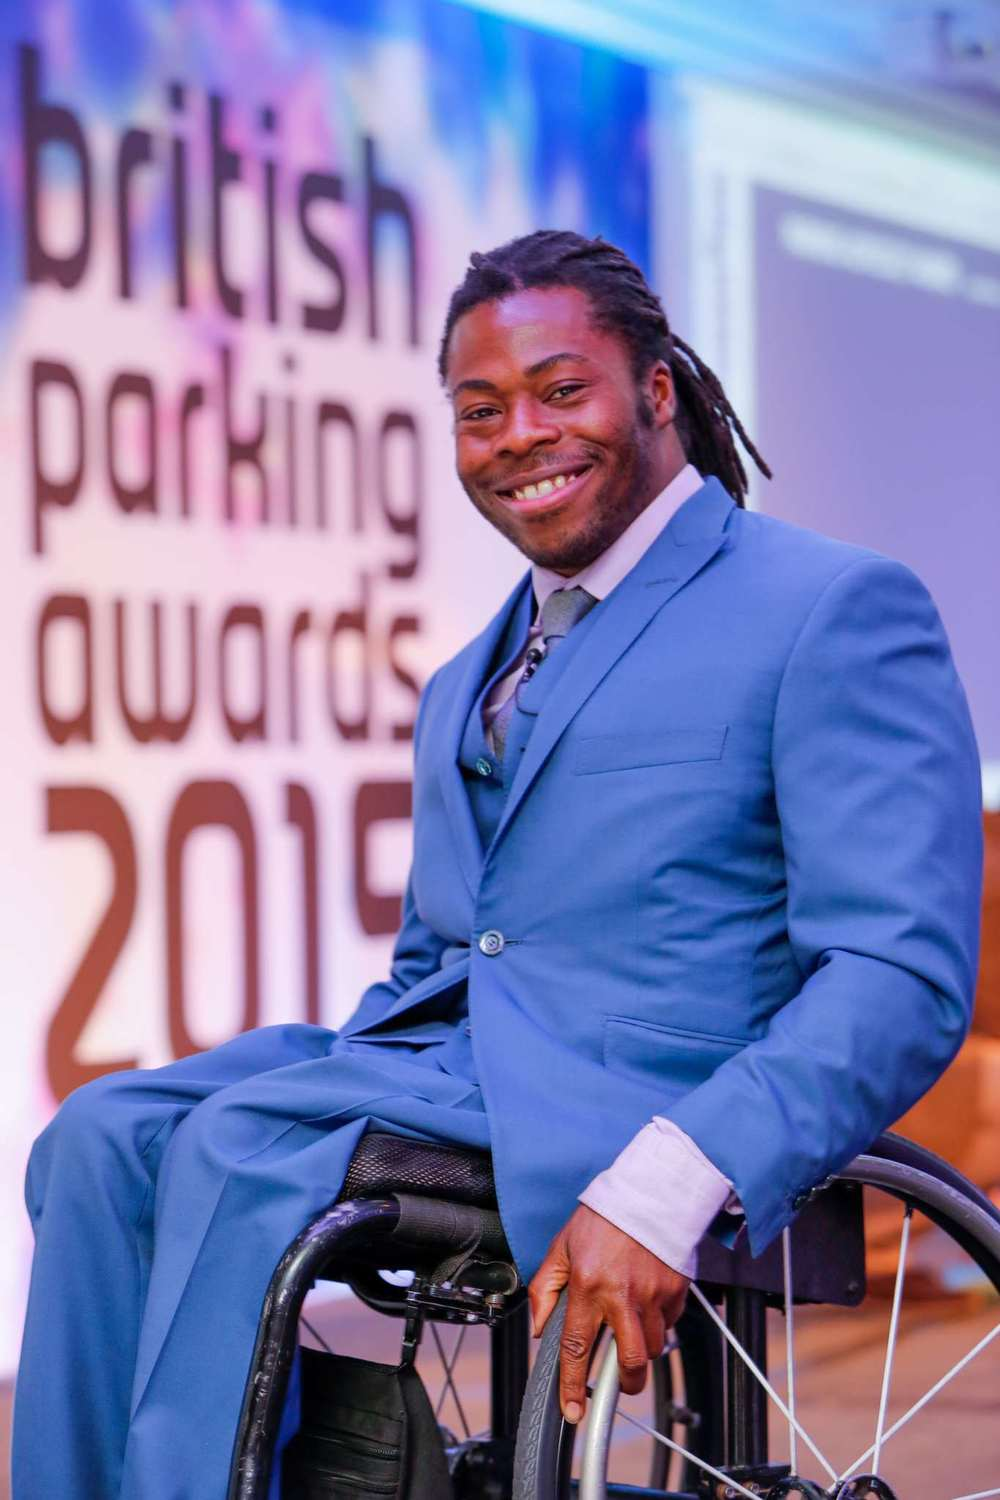 Television presenter and wheelchair basketball playerAde Adepitan presented the Sustainable Parking Award to FES Commercial Director Marcus Brodin.